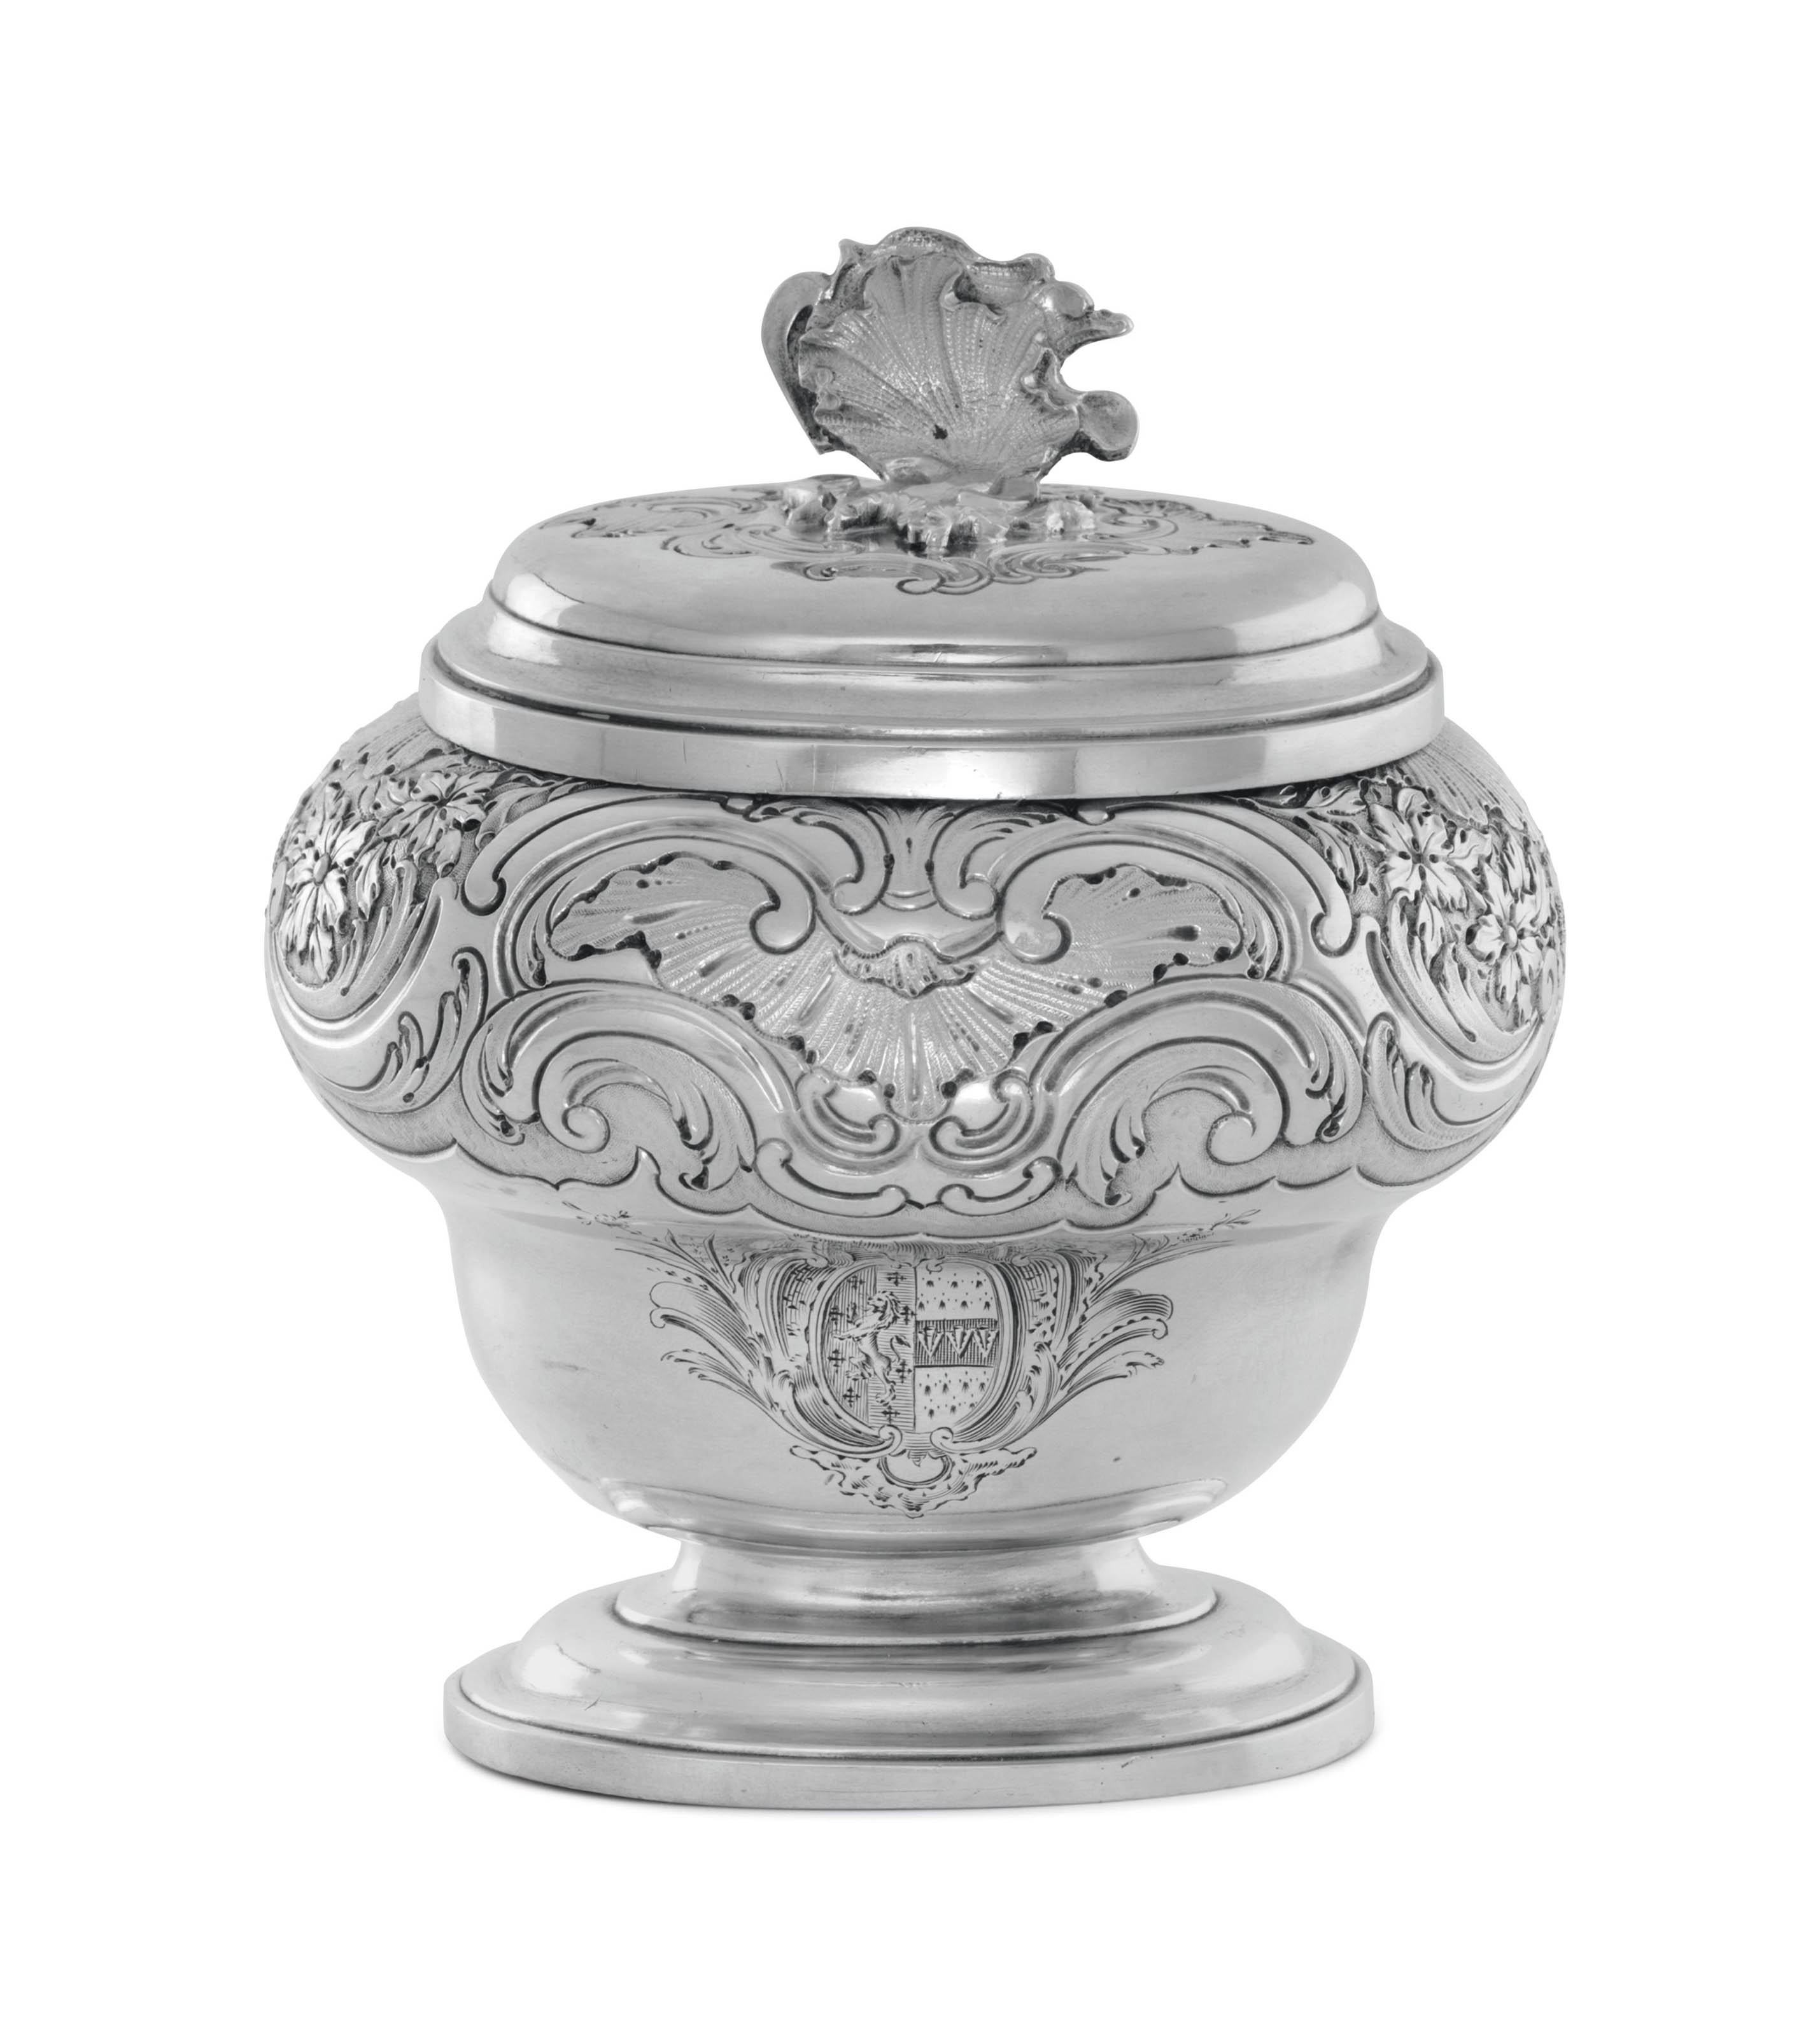 A GEORGE II SILVER SUGAR BOWL